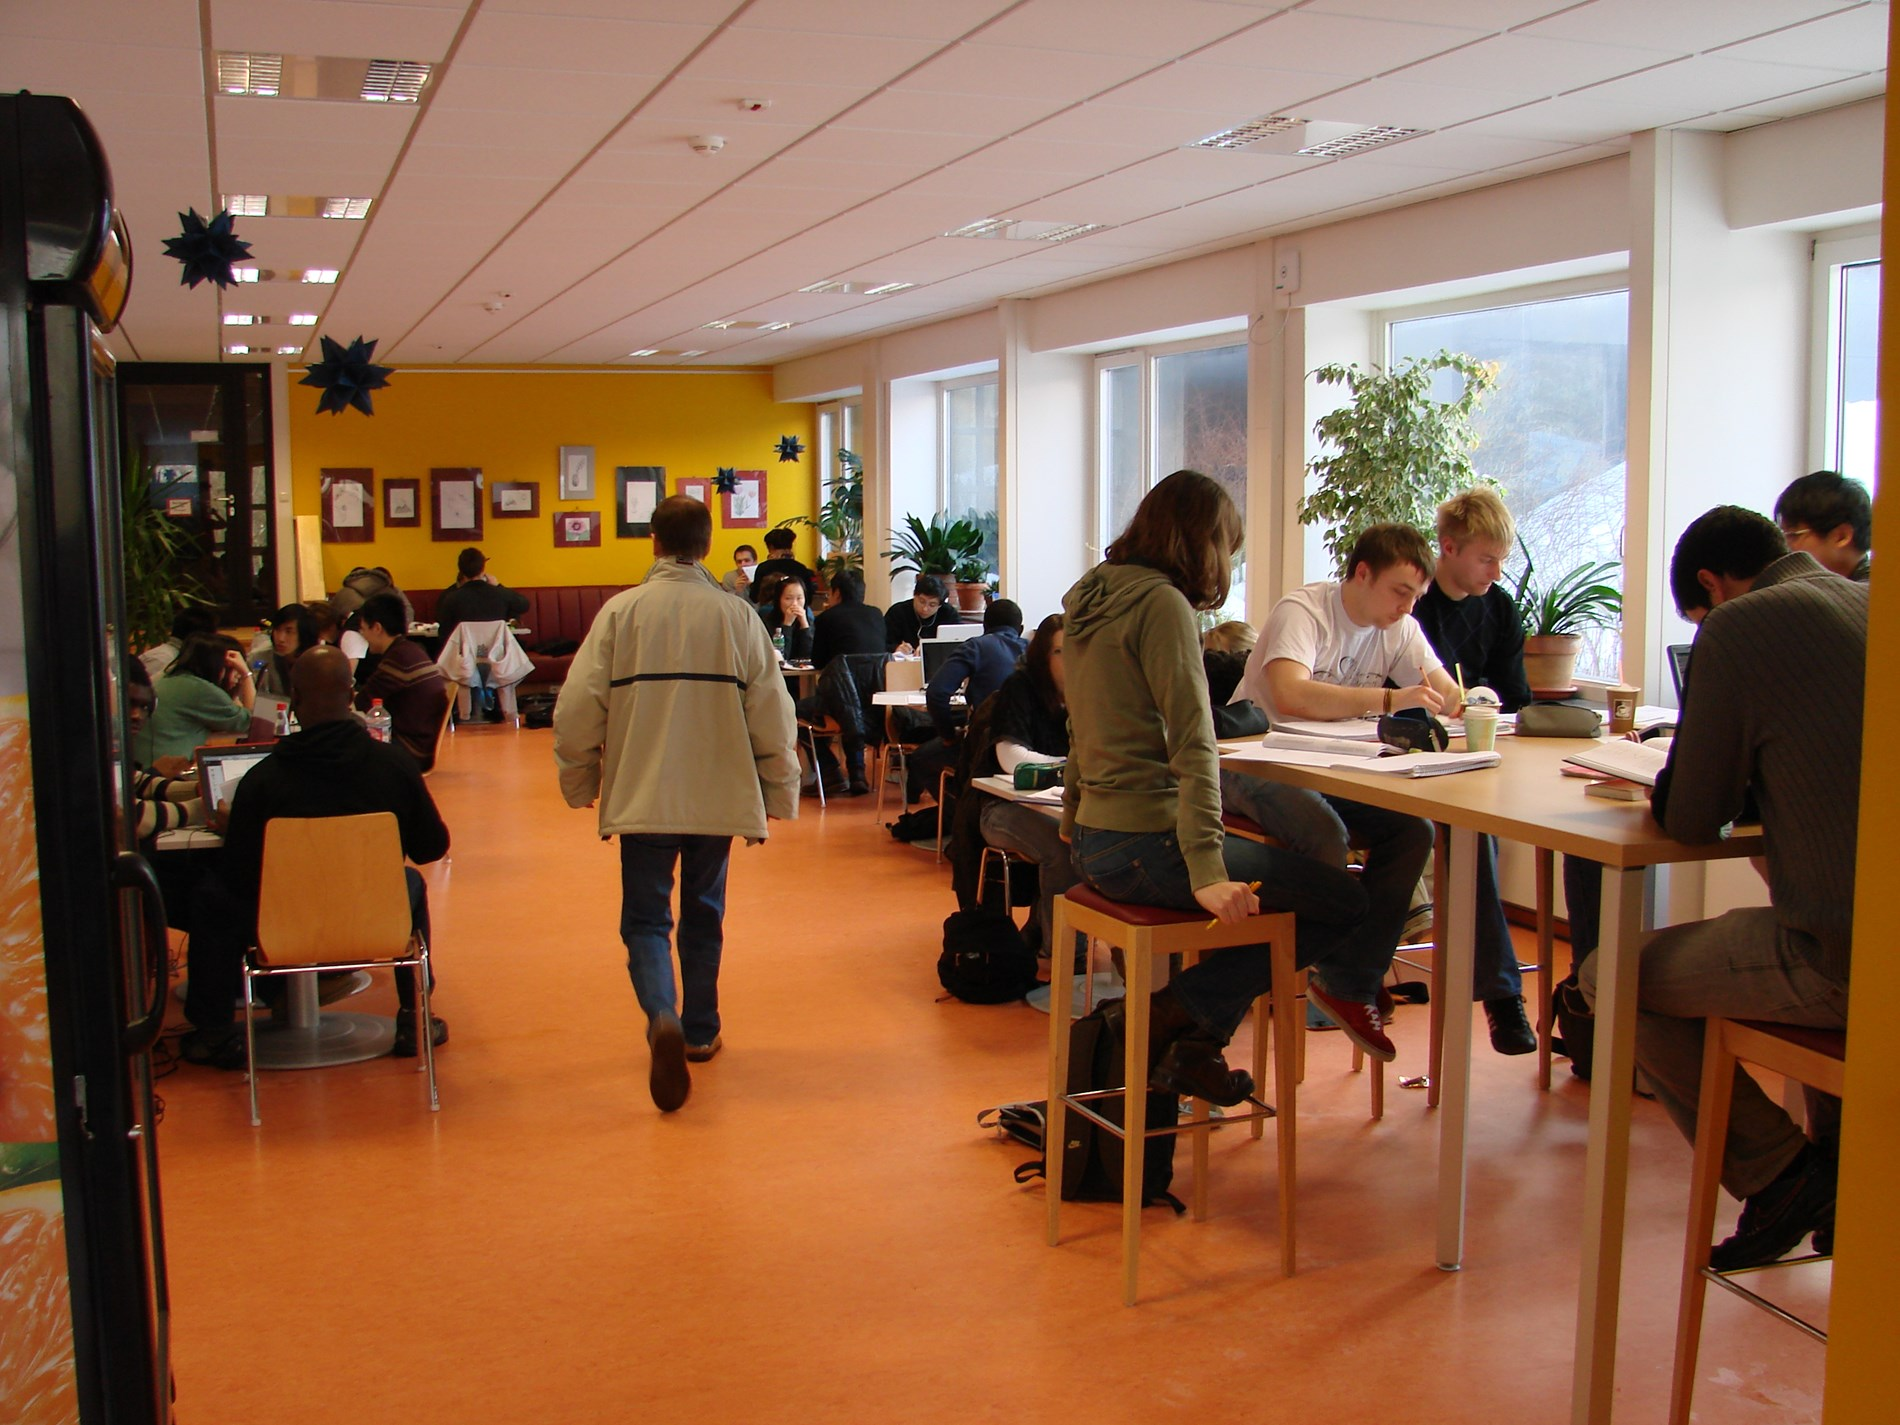 Clausthal University of Technology-Photos-3